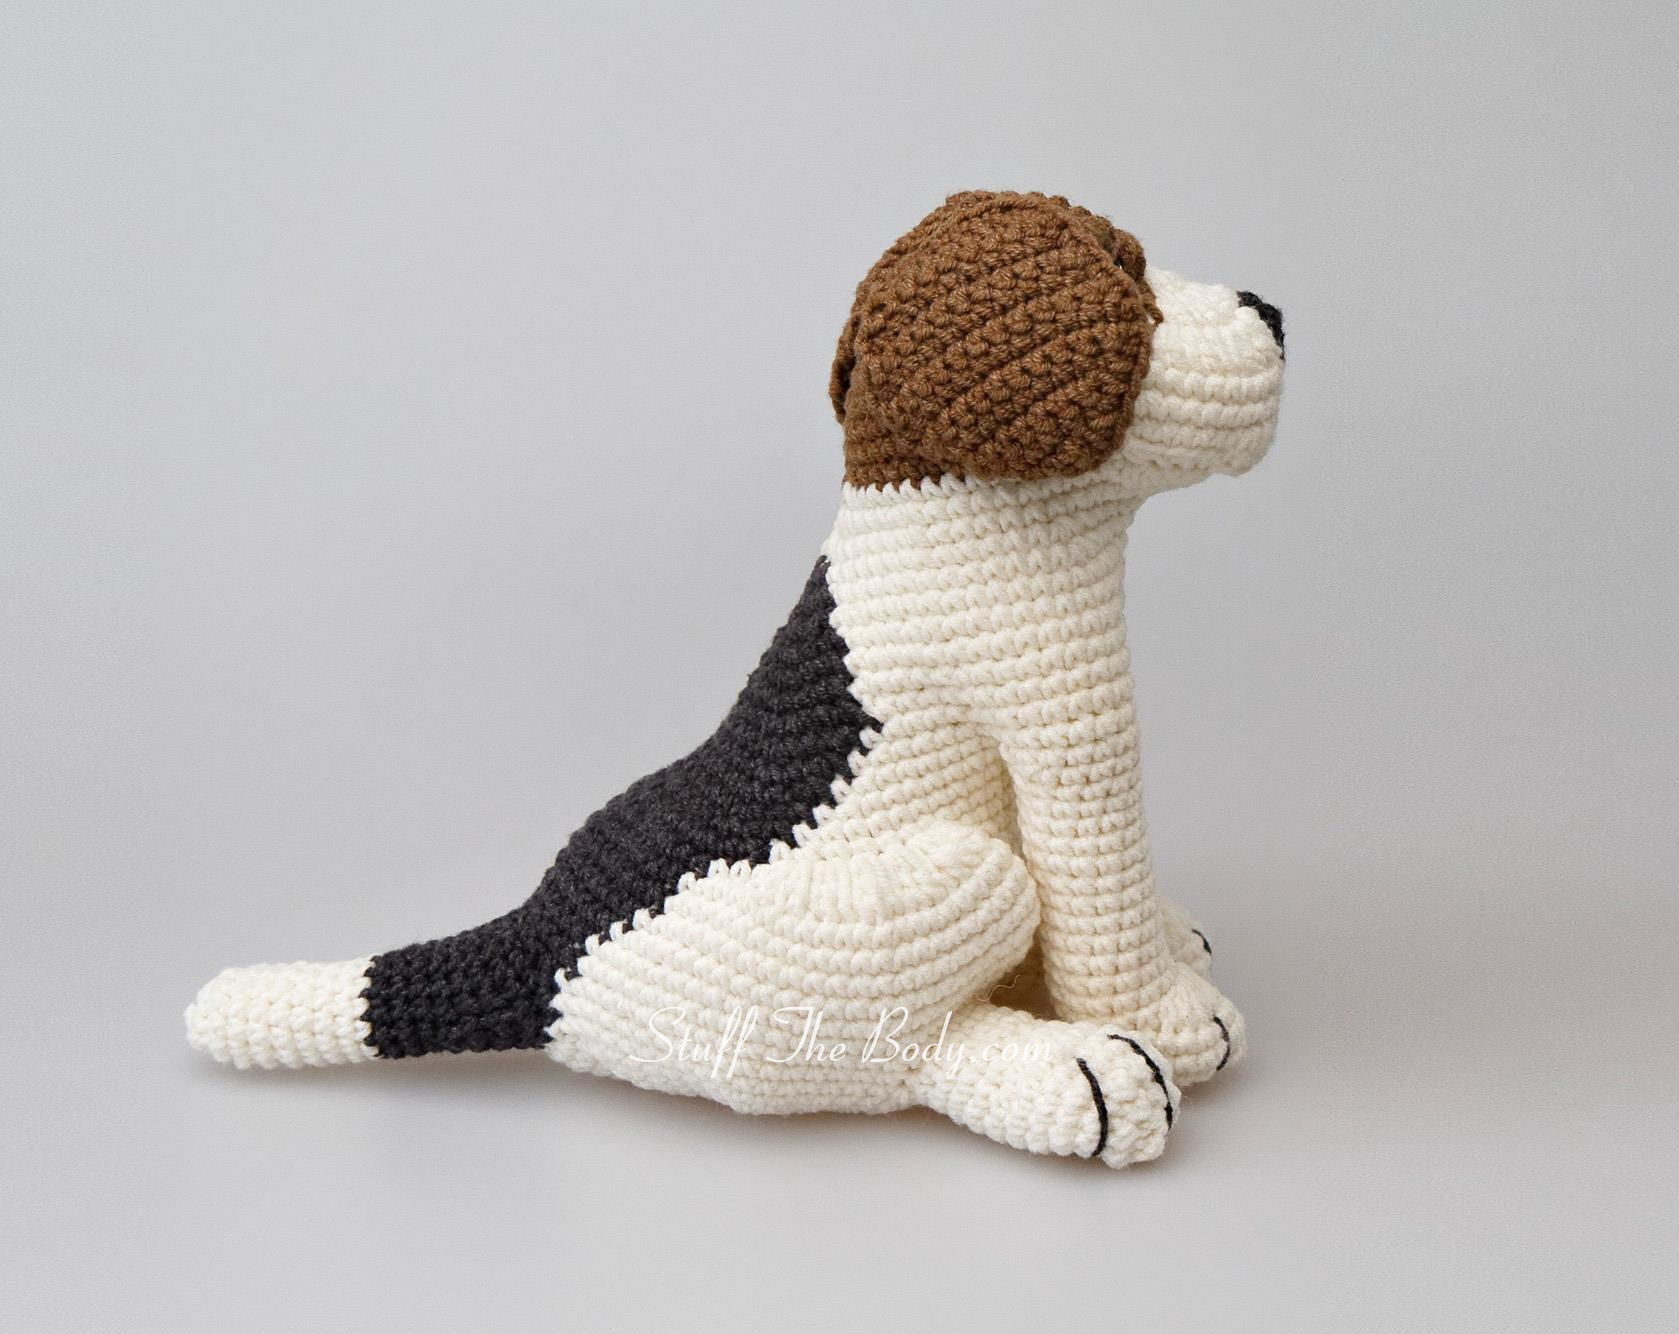 Crochet Amigurumi dog, crochet puppy doll, stuffed toy dog, small ... | 1334x1679